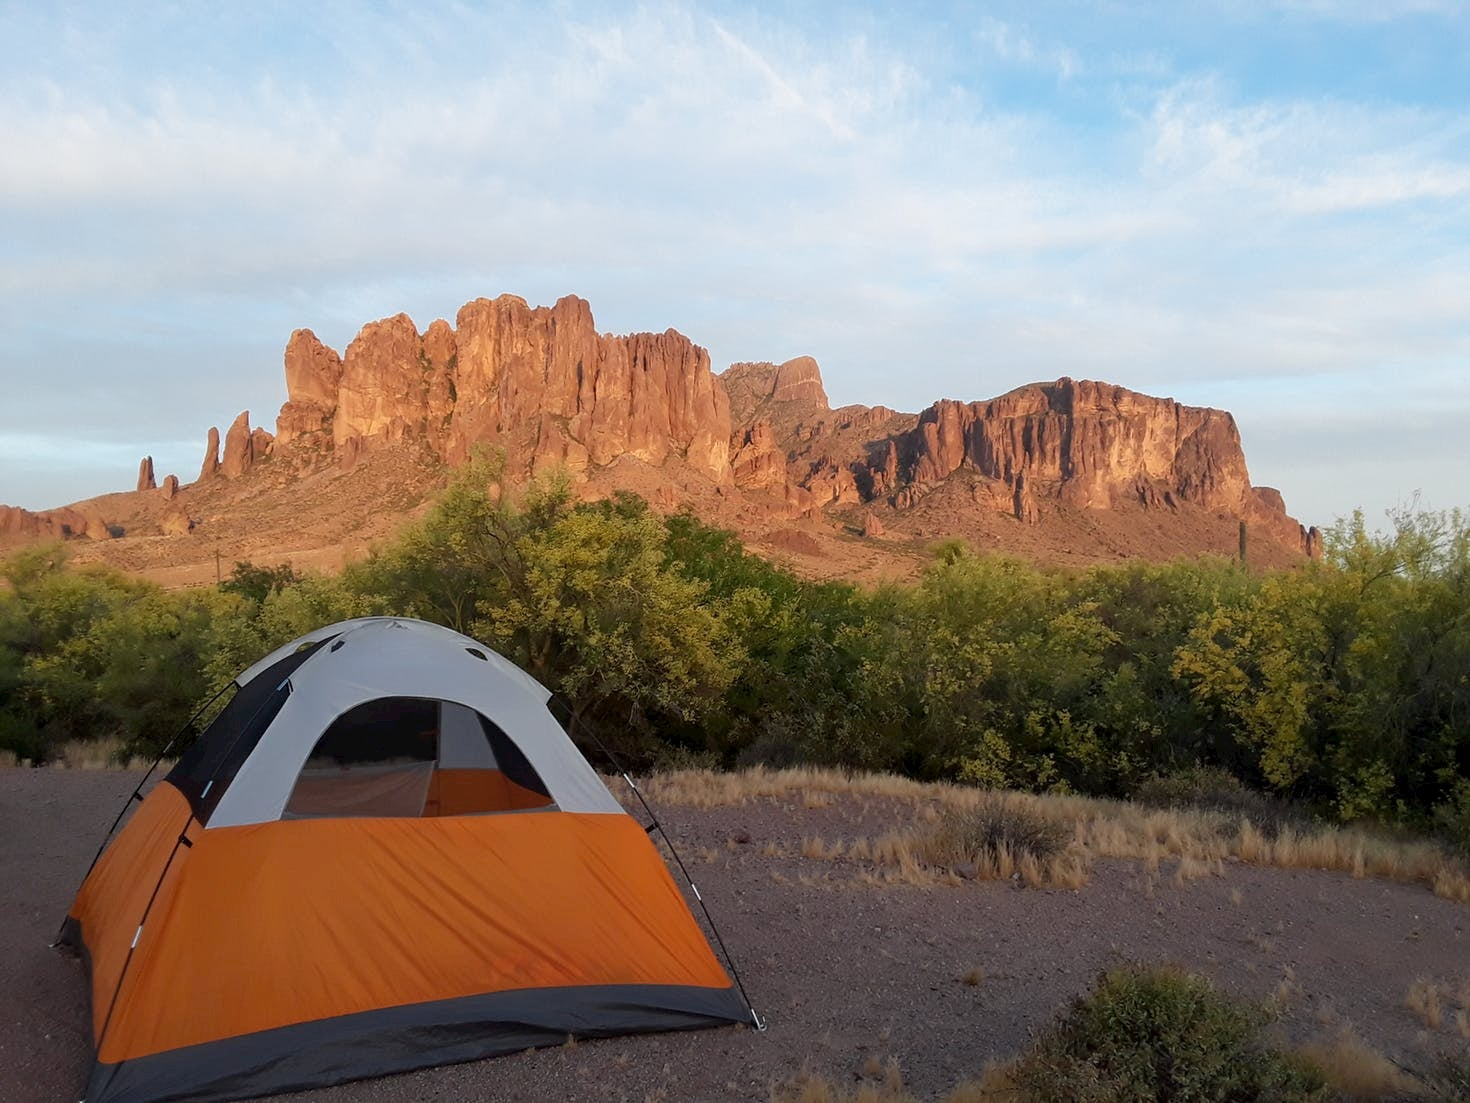 Orange tent set up in front of the Superstition Mountains in Arizona.